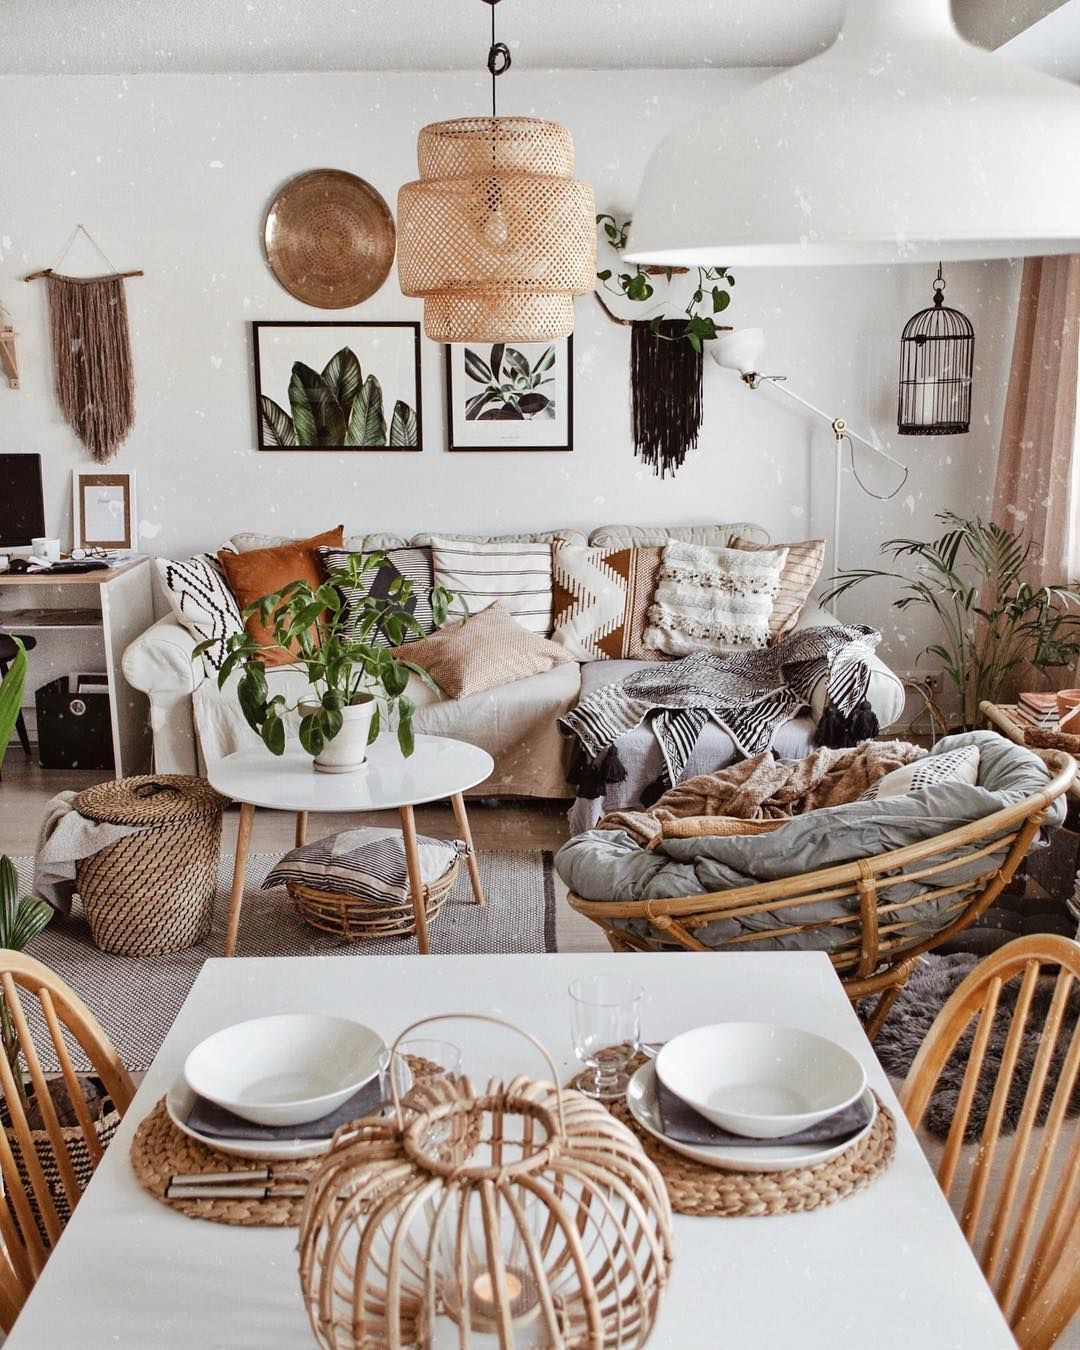 Cozy Living Room With White Interior And Bohemian Style Is Cute And Light Rustic Wooden Details And Boho Style Acce Boho Living Room Decor Living Room Designs